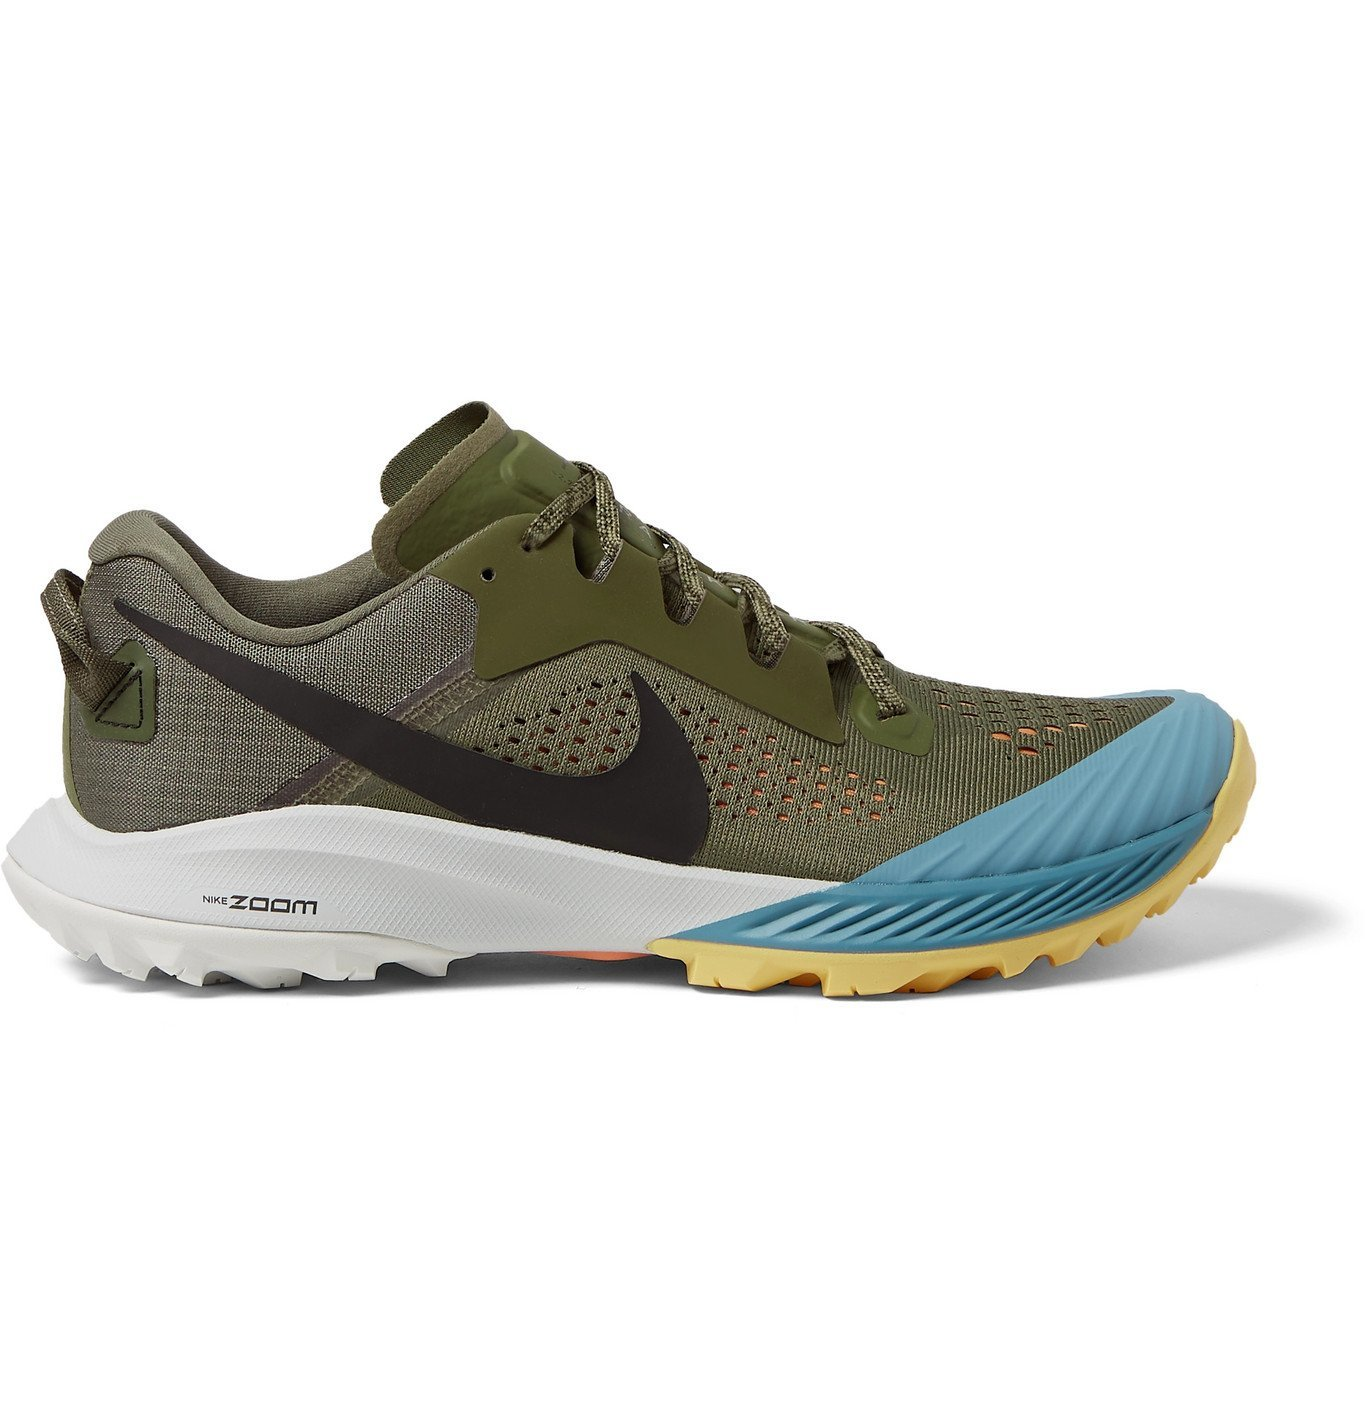 Nike Running - Air Zoom Terra Kiger 6 Rubber-Trimmed Mesh Trail Running Sneakers - Green